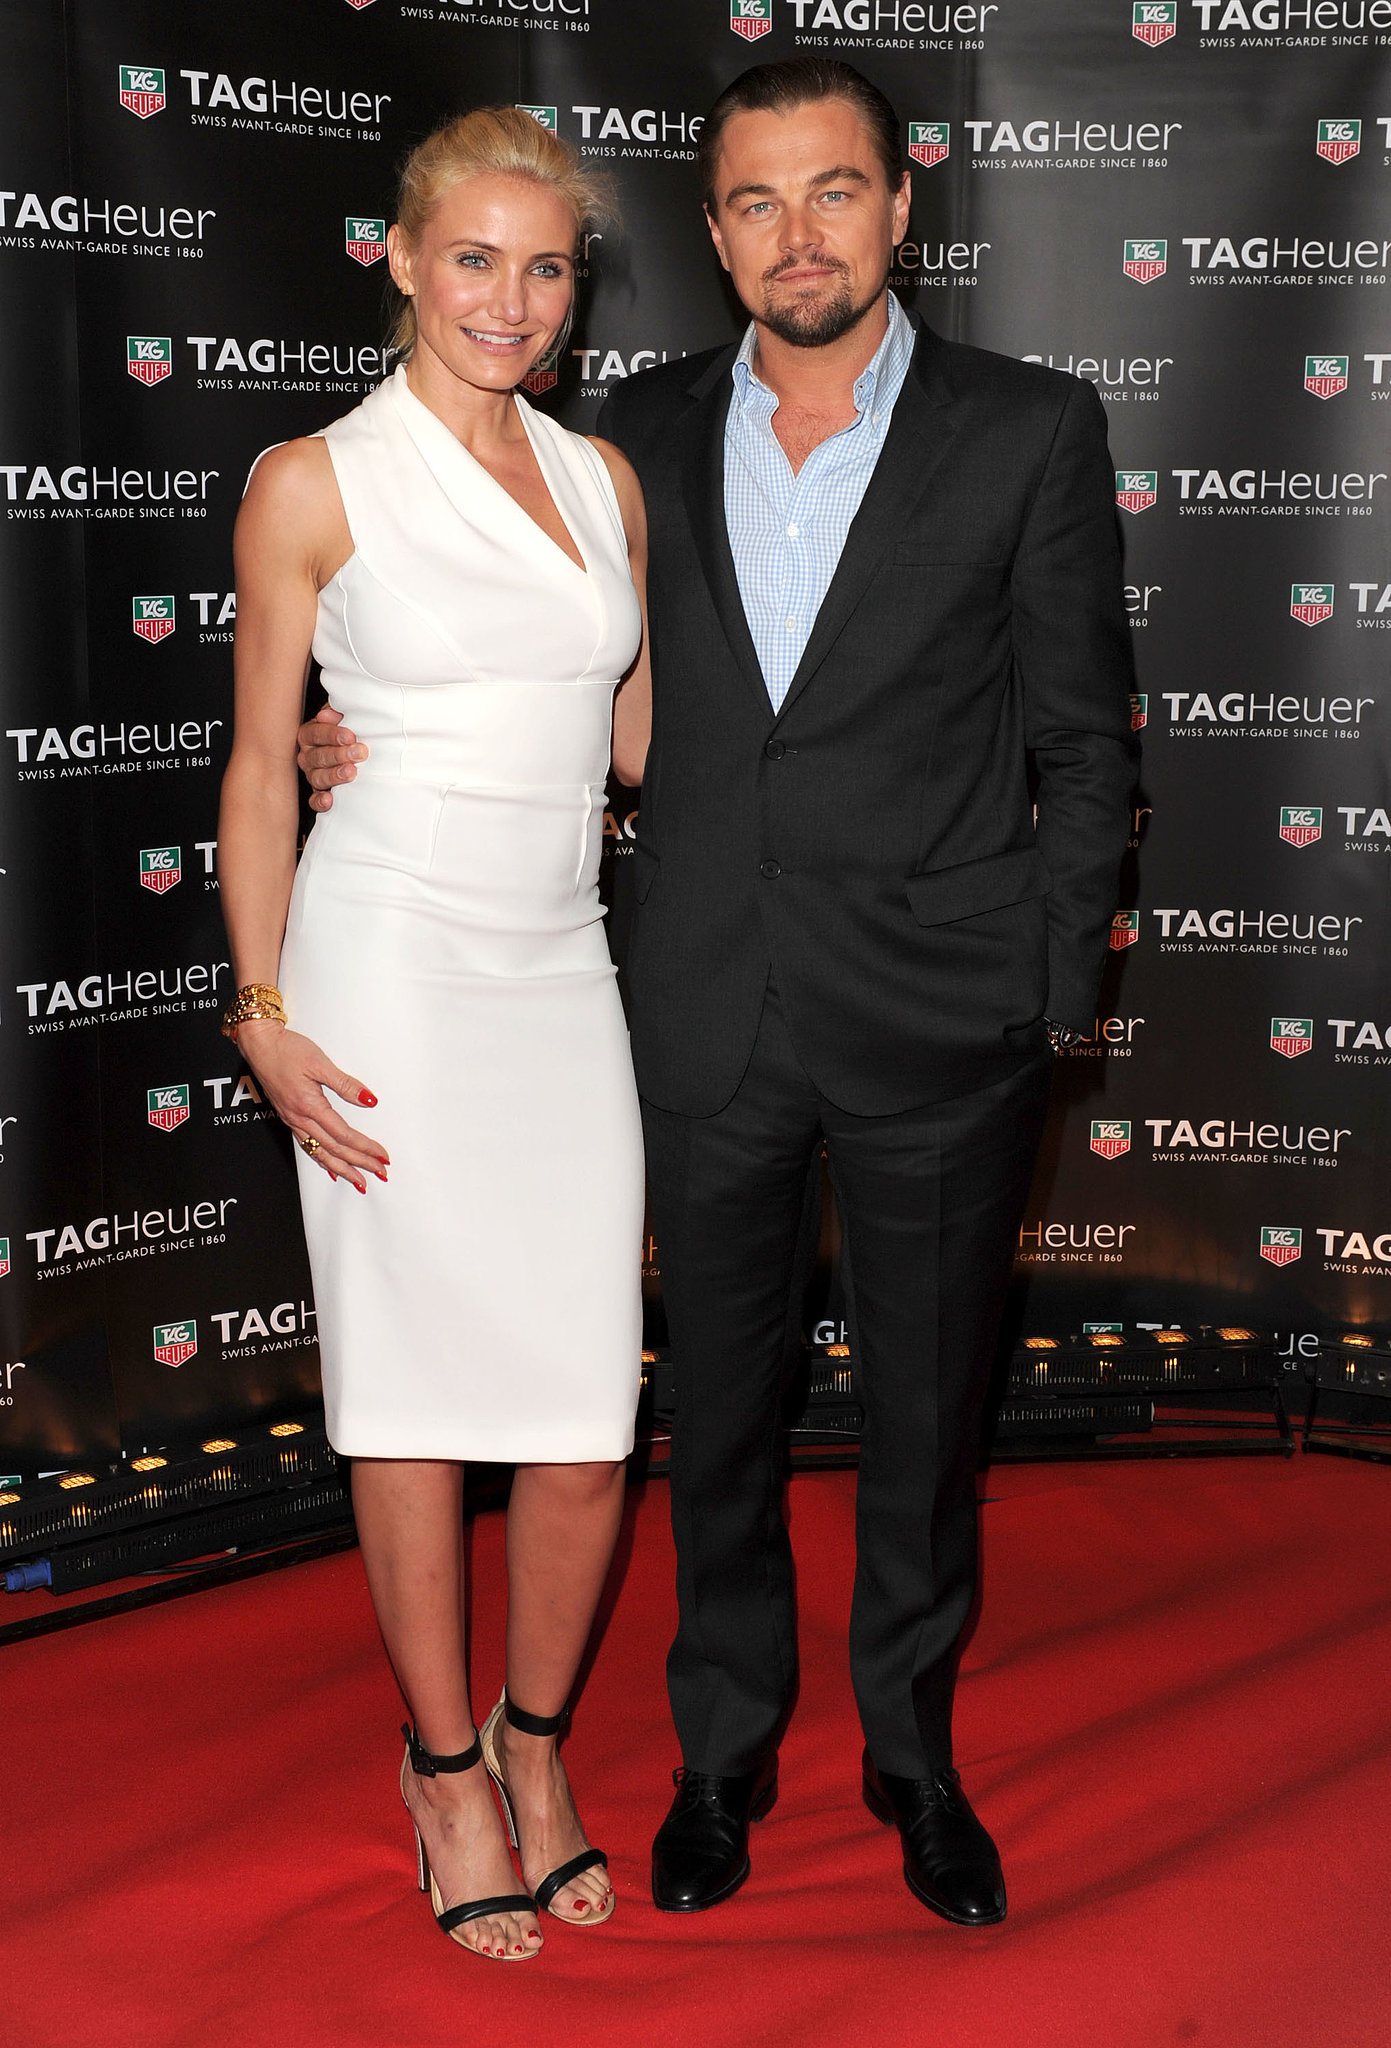 Pals Leonardo DiCaprio and Cameron Diaz linked up at the Cannes Film Festival for the Tag Heuer yacht party.